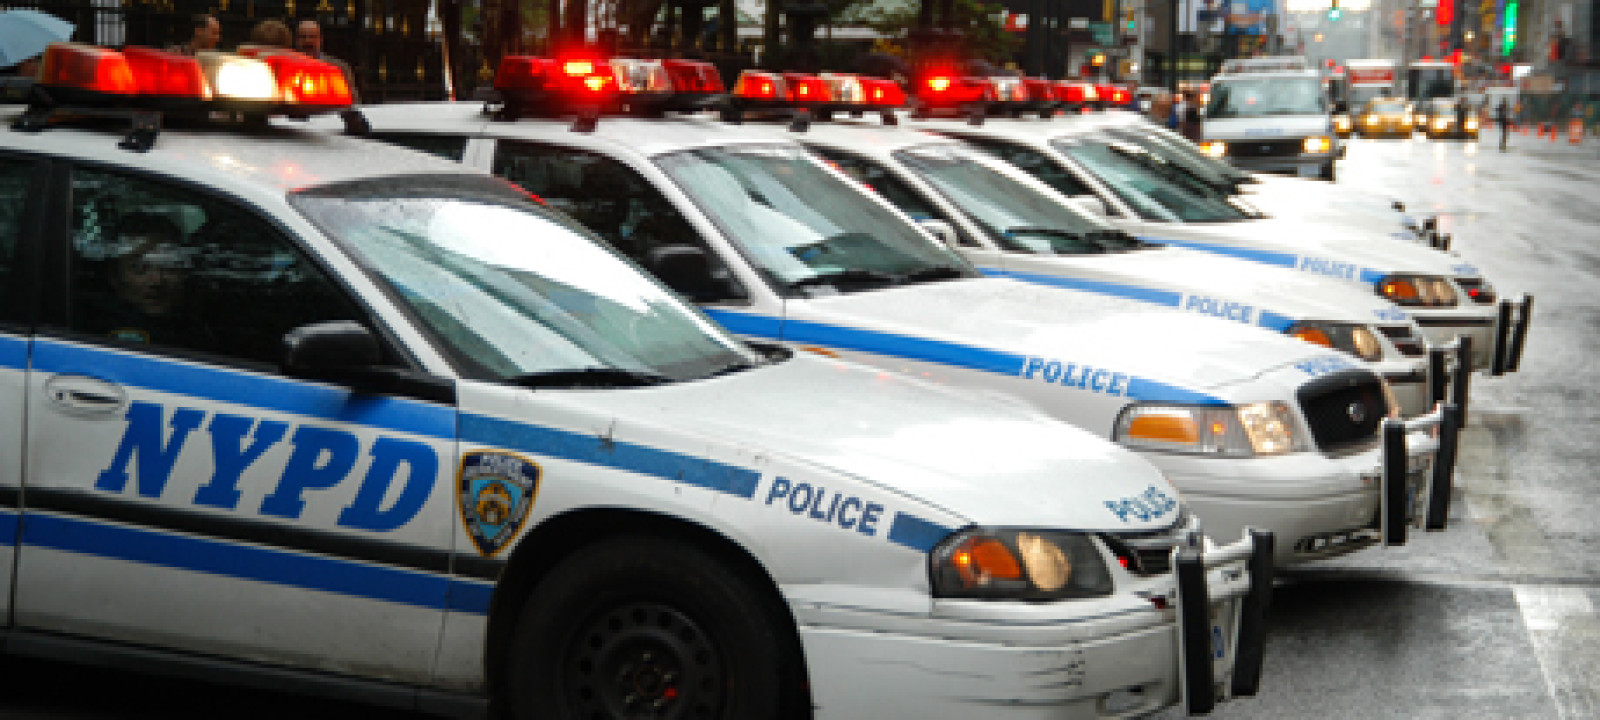 460x300_nypd_cars